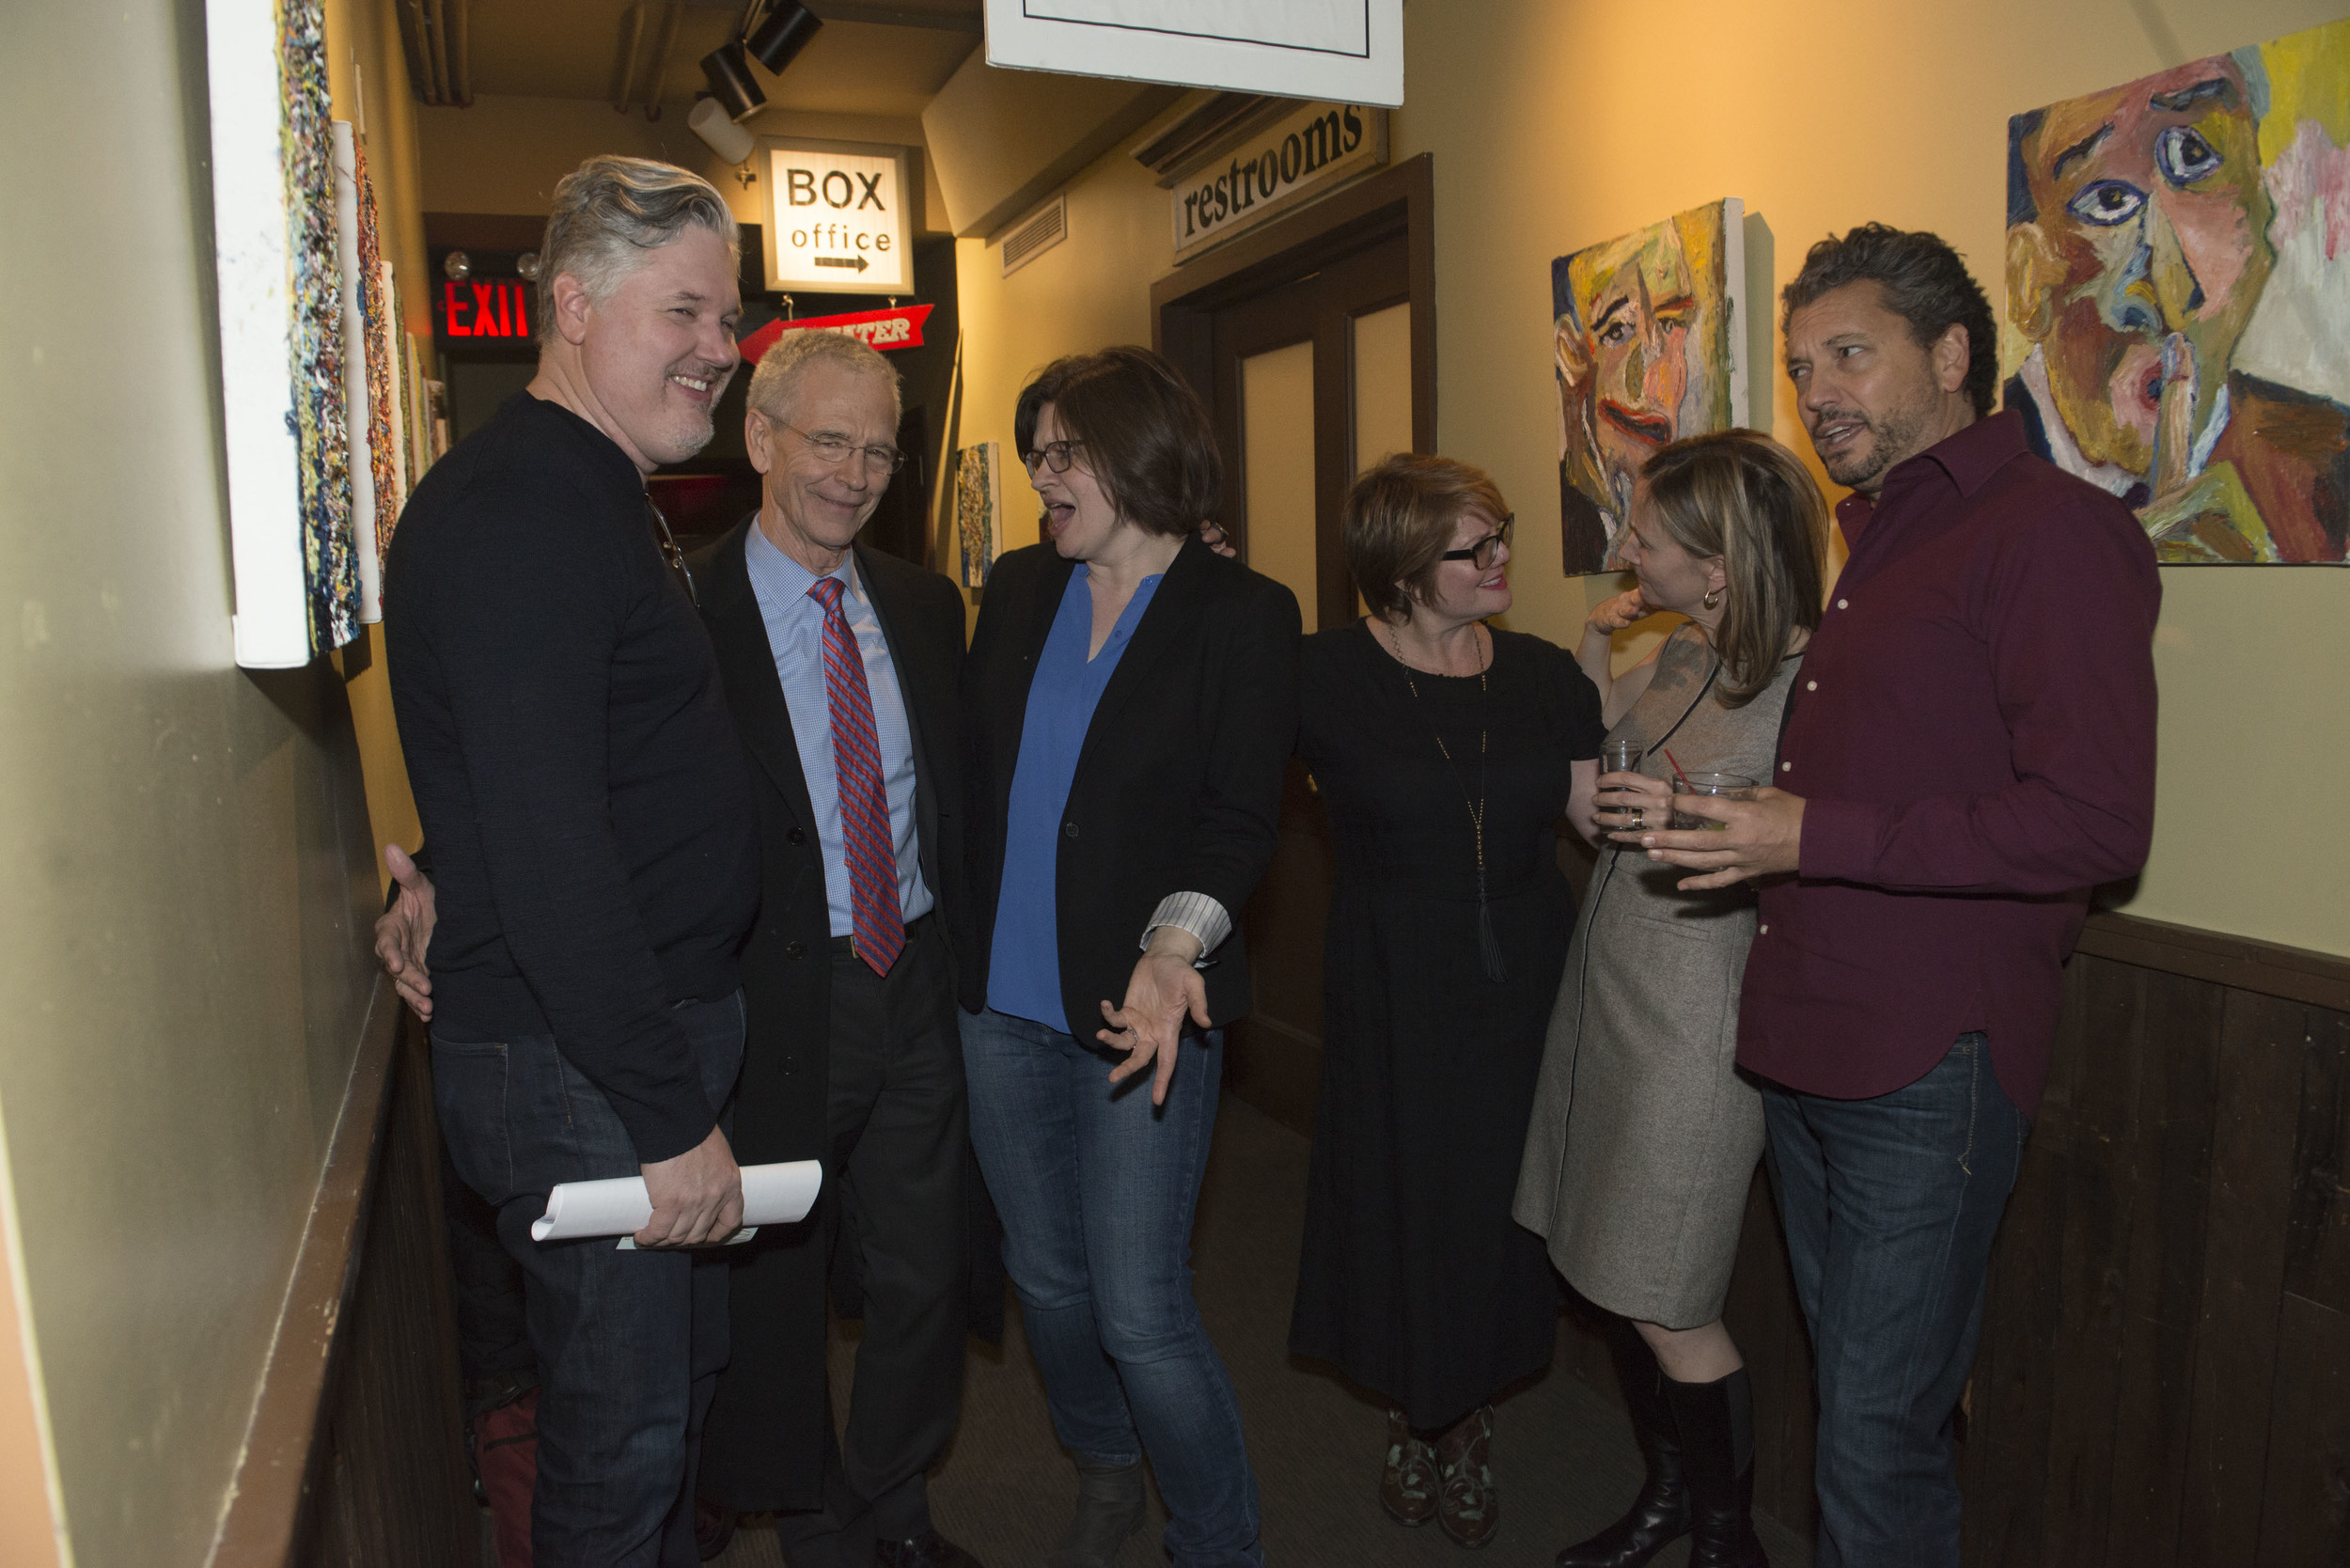 Michael Buckley, David Martin, Emmy Laybourne, Libba Bray, Annabel Monaghan and Anthony Schneider chat it up after the show on January 22, 2016.